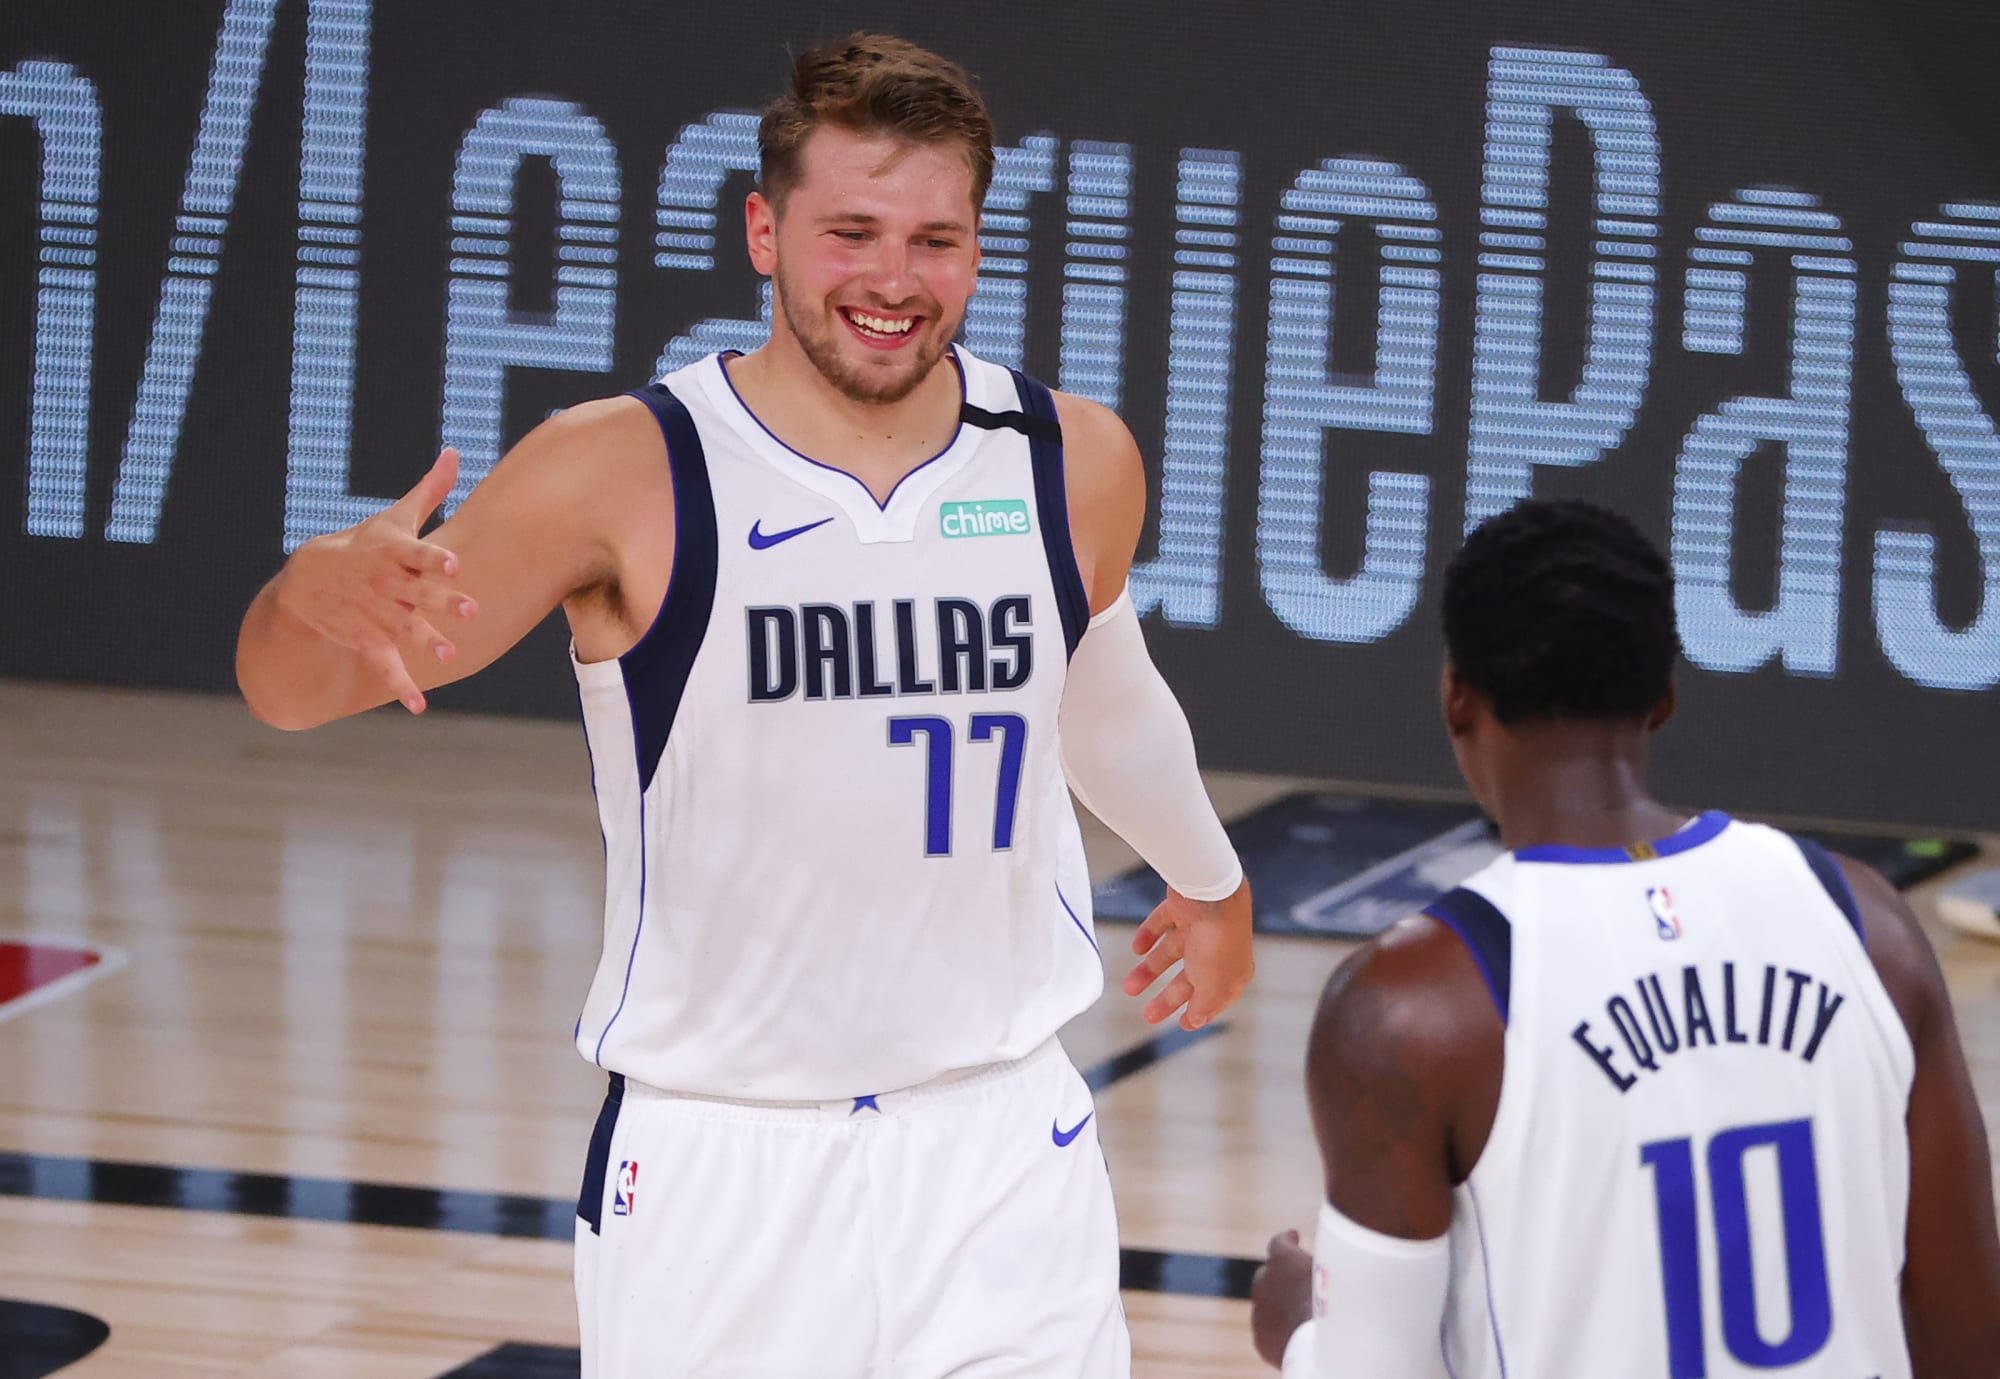 Mavericks: Luka Doncic produced one of the best assists of the season